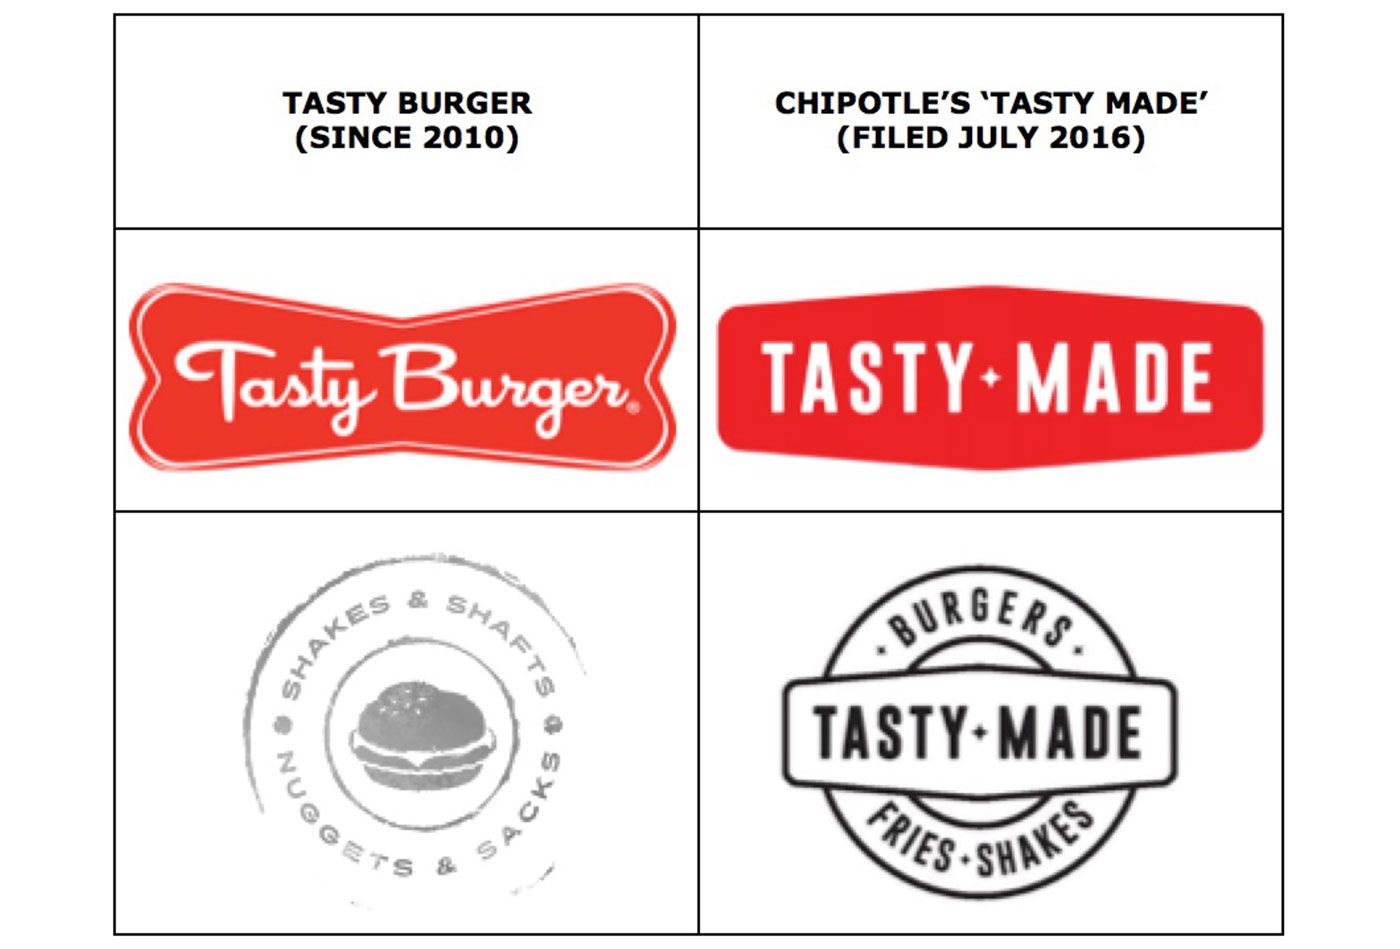 Chipotle Logo burger chain says chipotle stole its name and logo